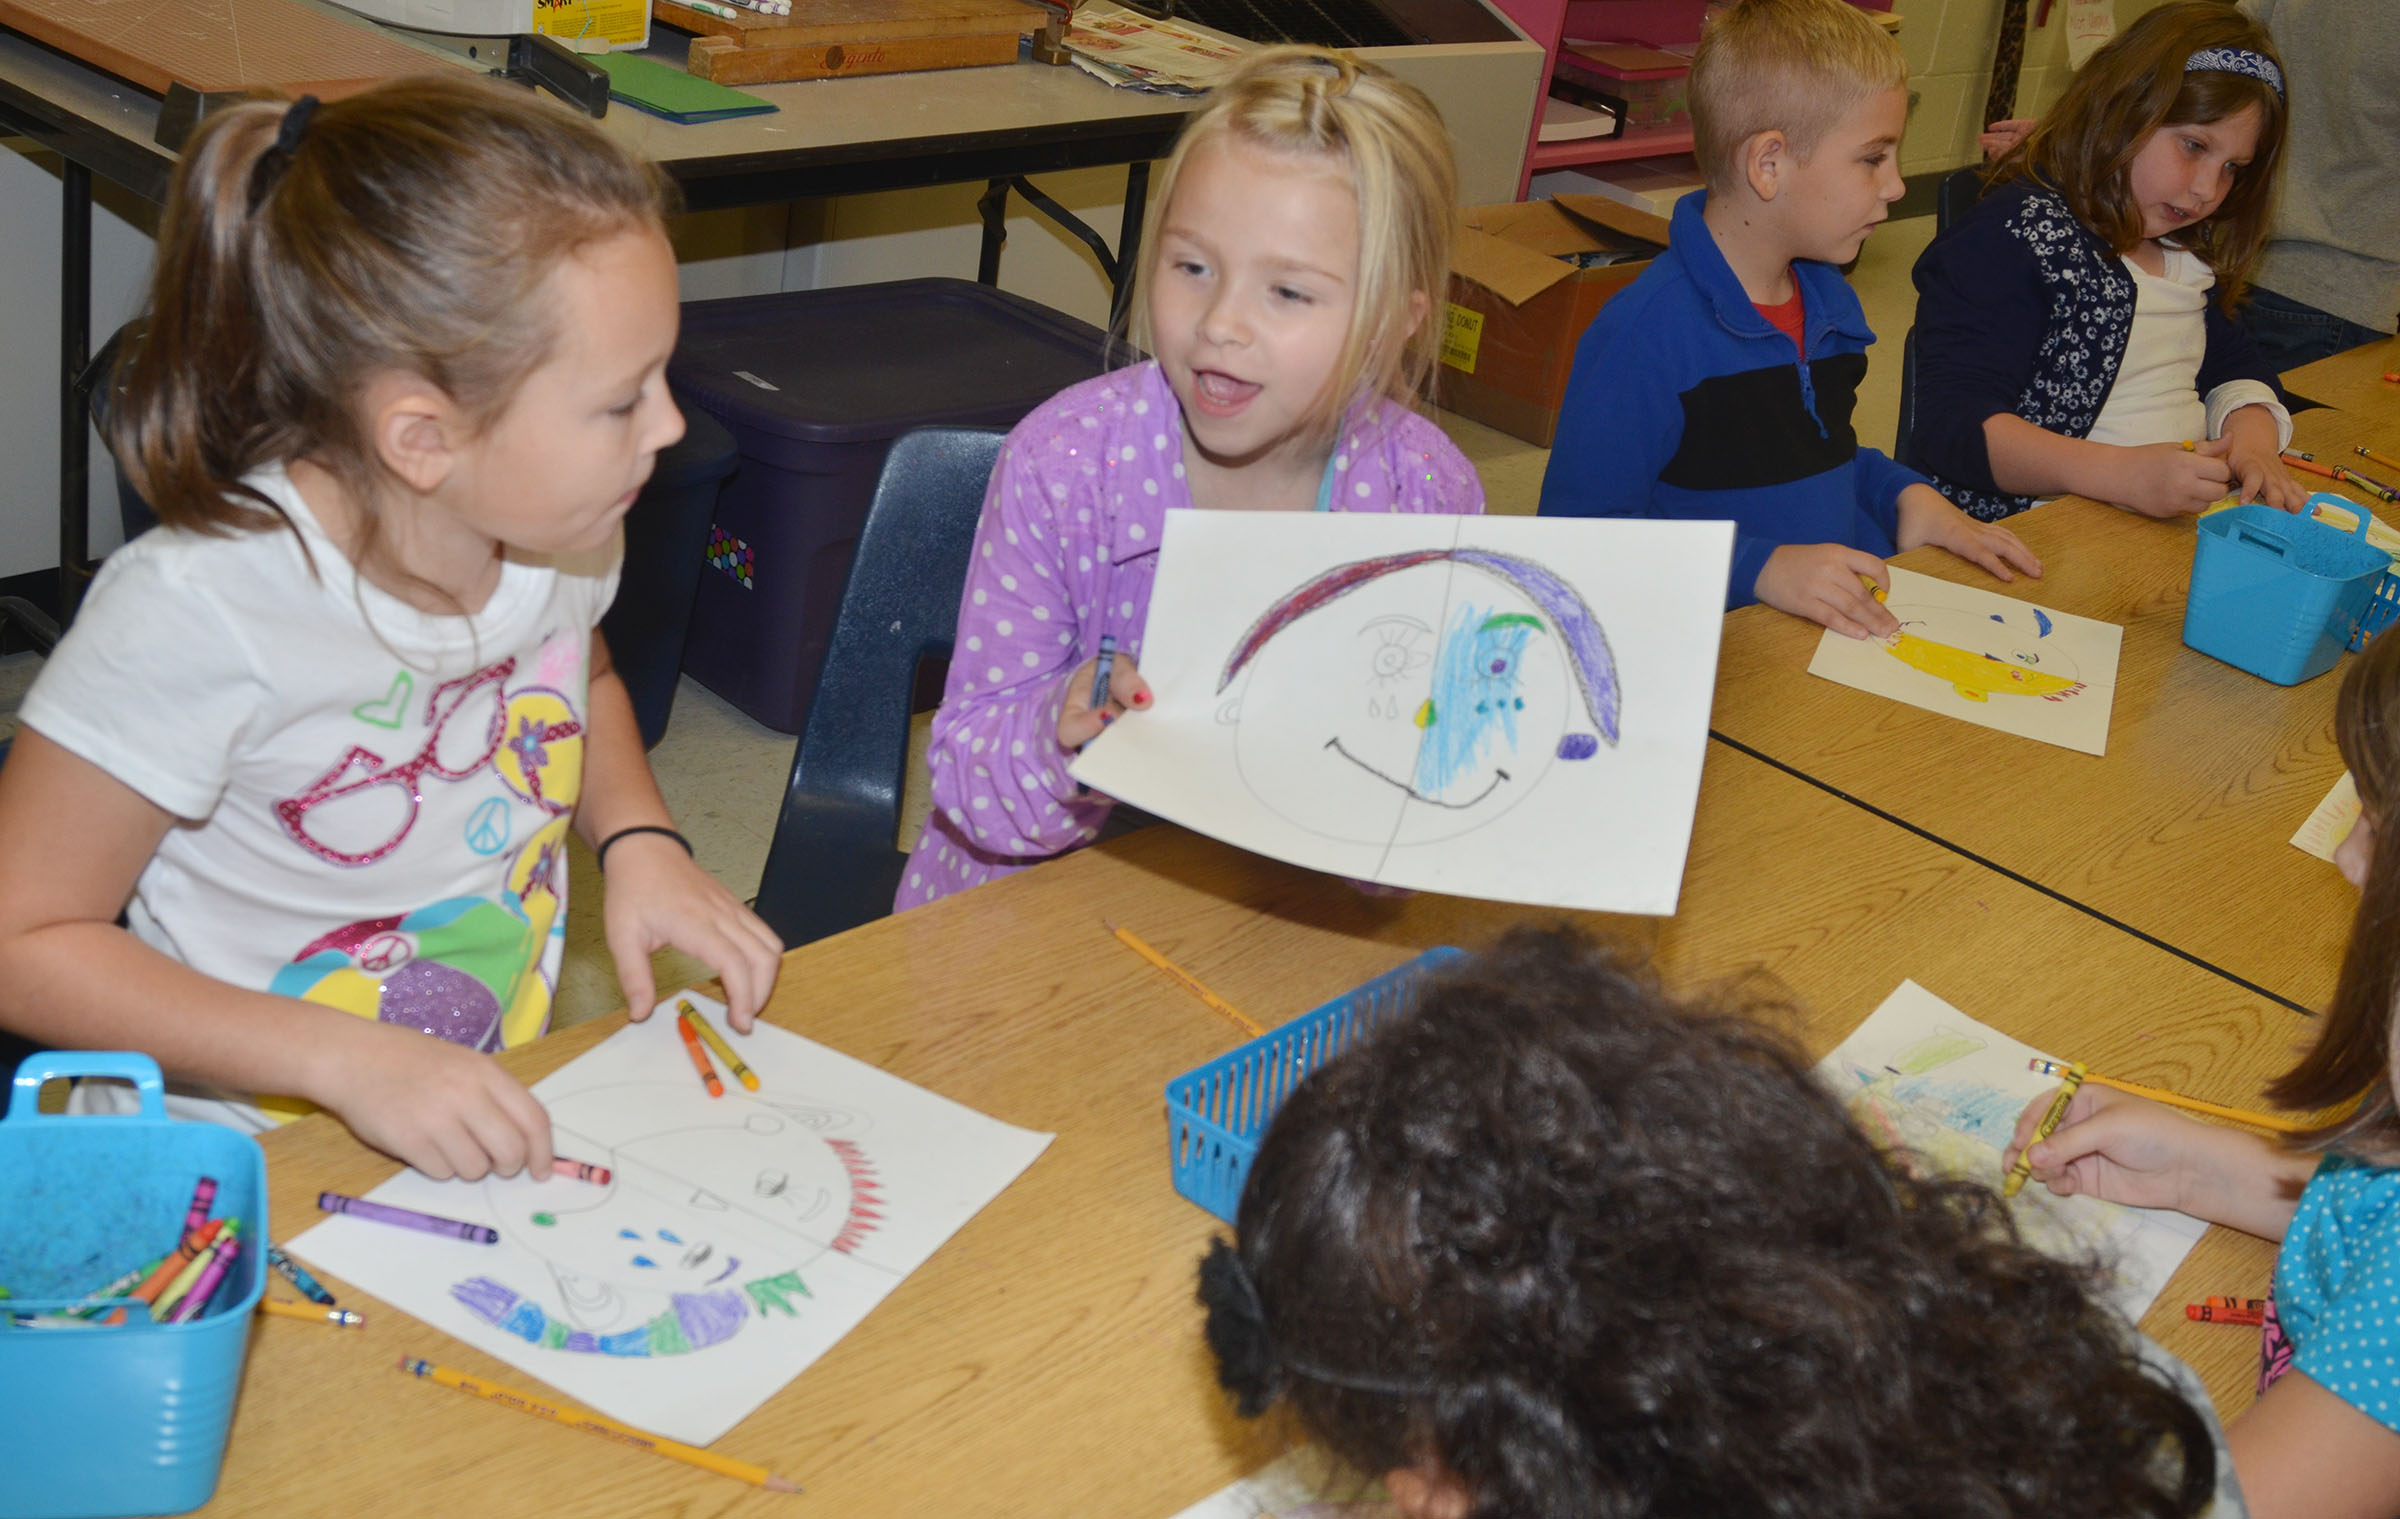 CES second-graders River McFarland, at left, and Lacy Covey talk about their warm and cool color faces.